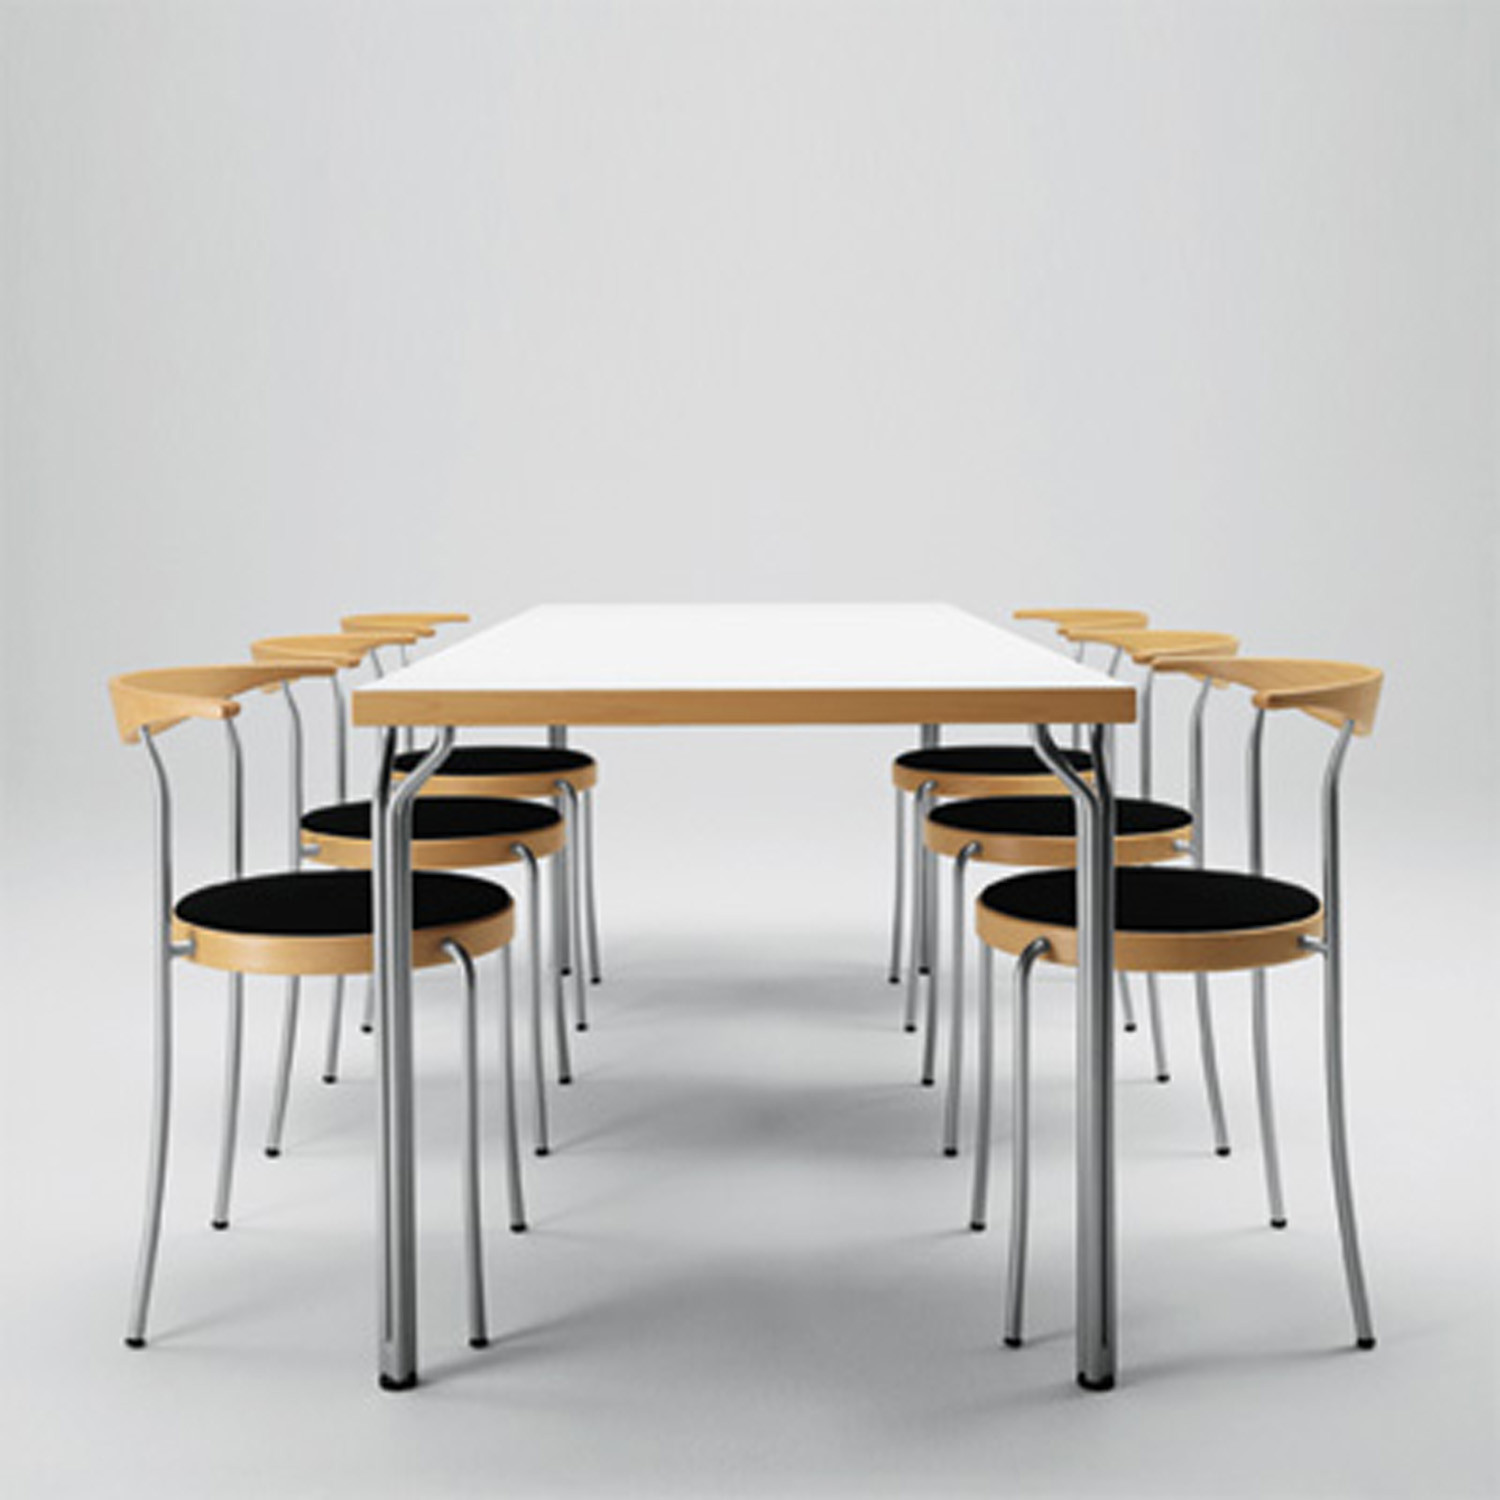 Partout Chairs by Magnus Olesen